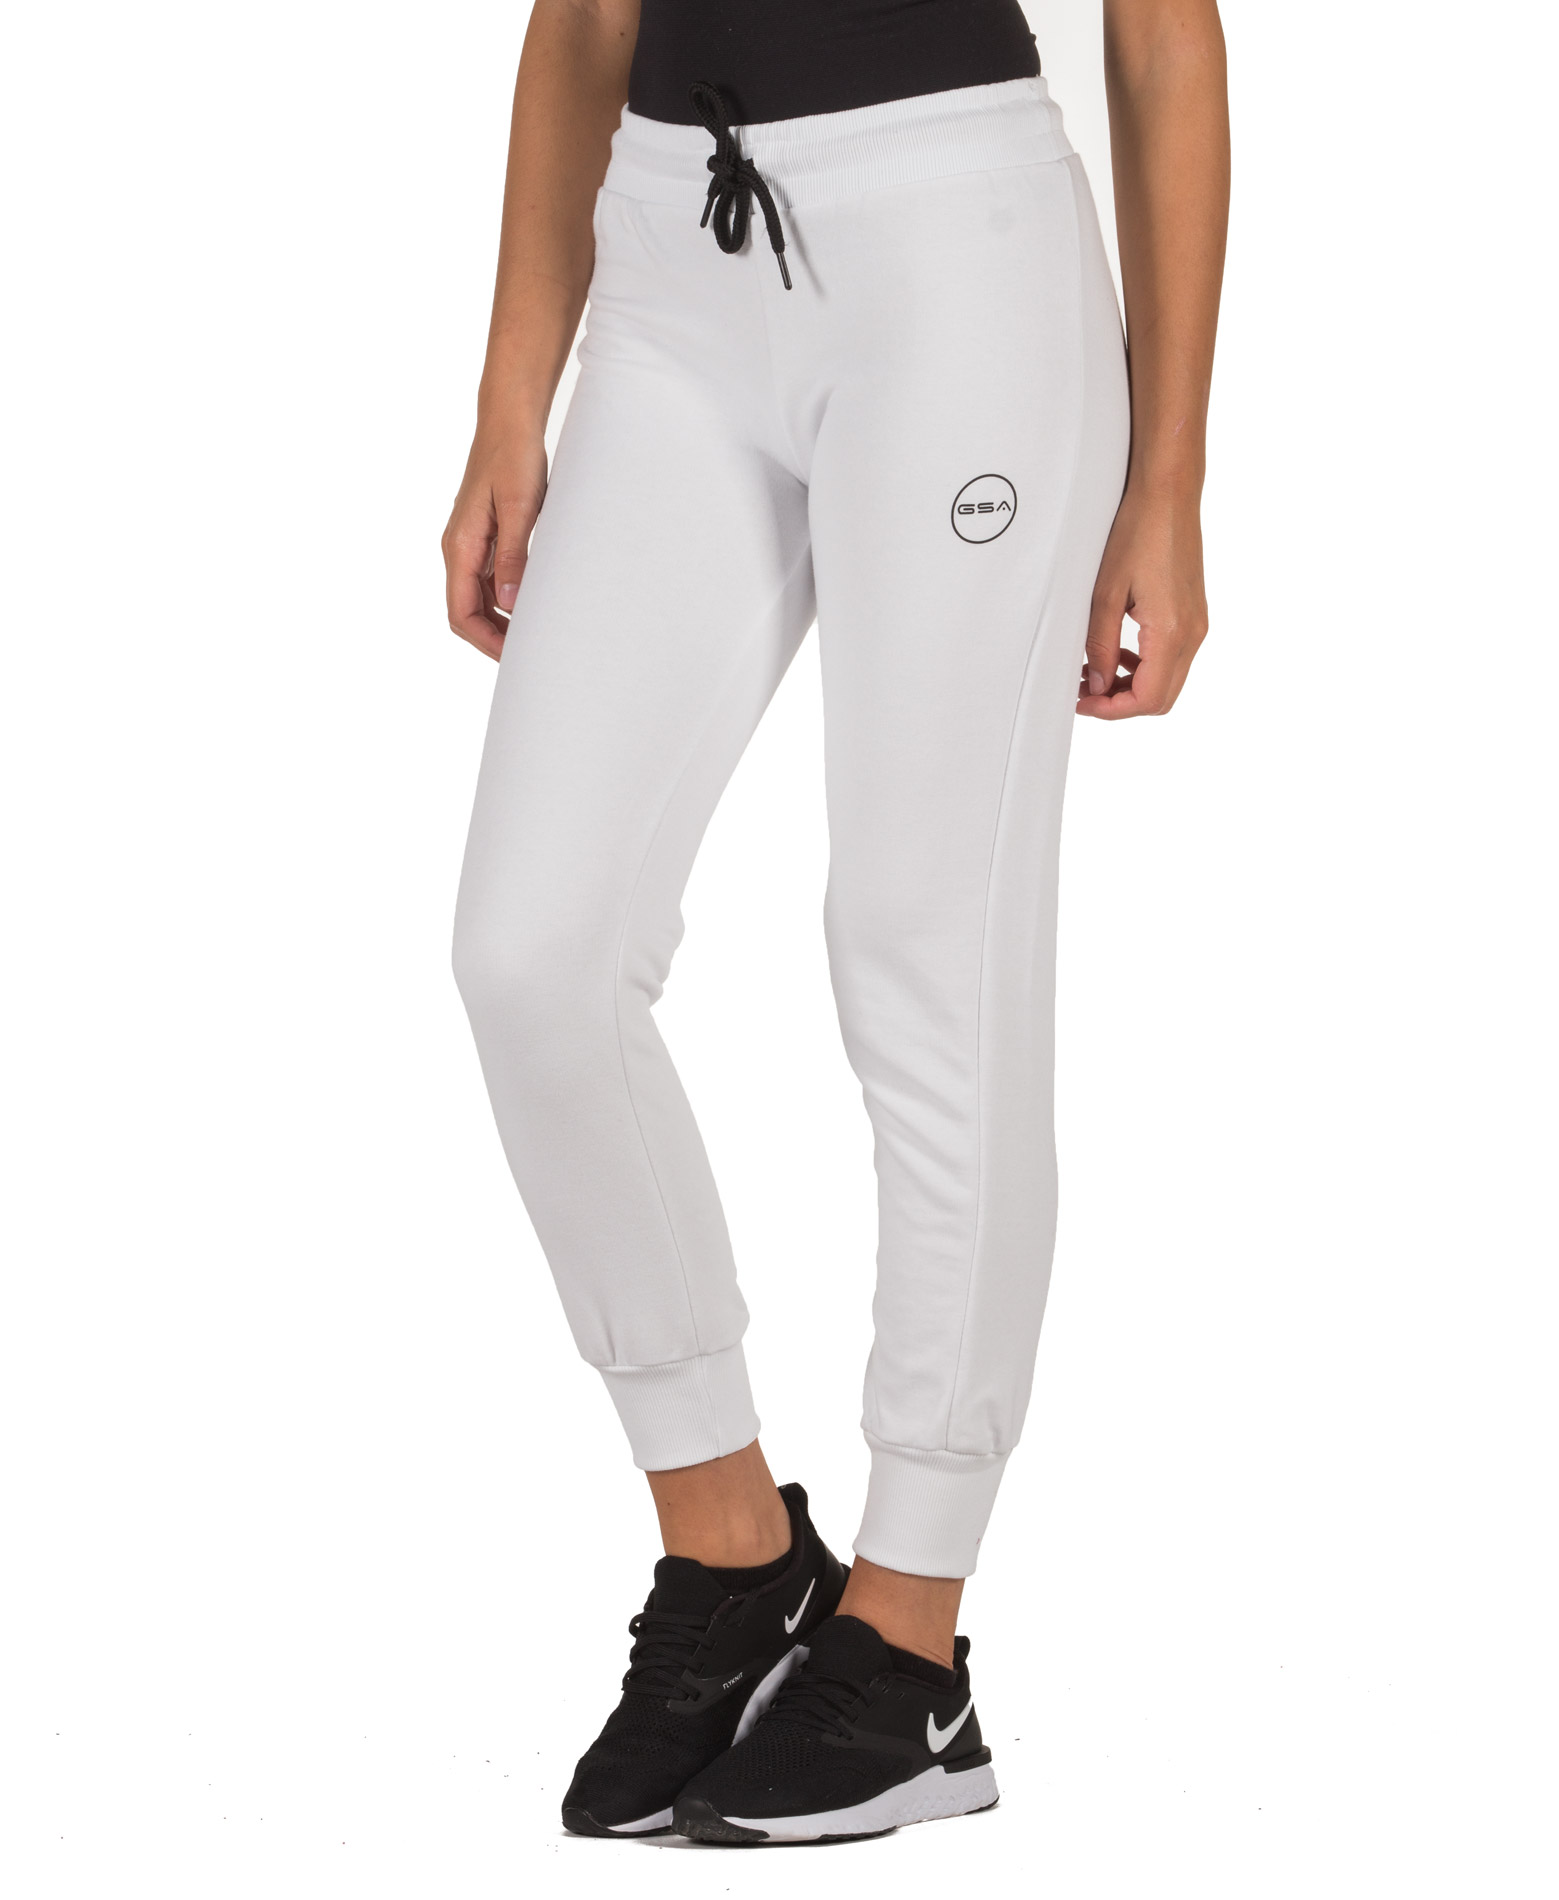 GSA SWEATPANTS WMN TEMPO JOGGER 17-28031-STAR WHITE Λευκό